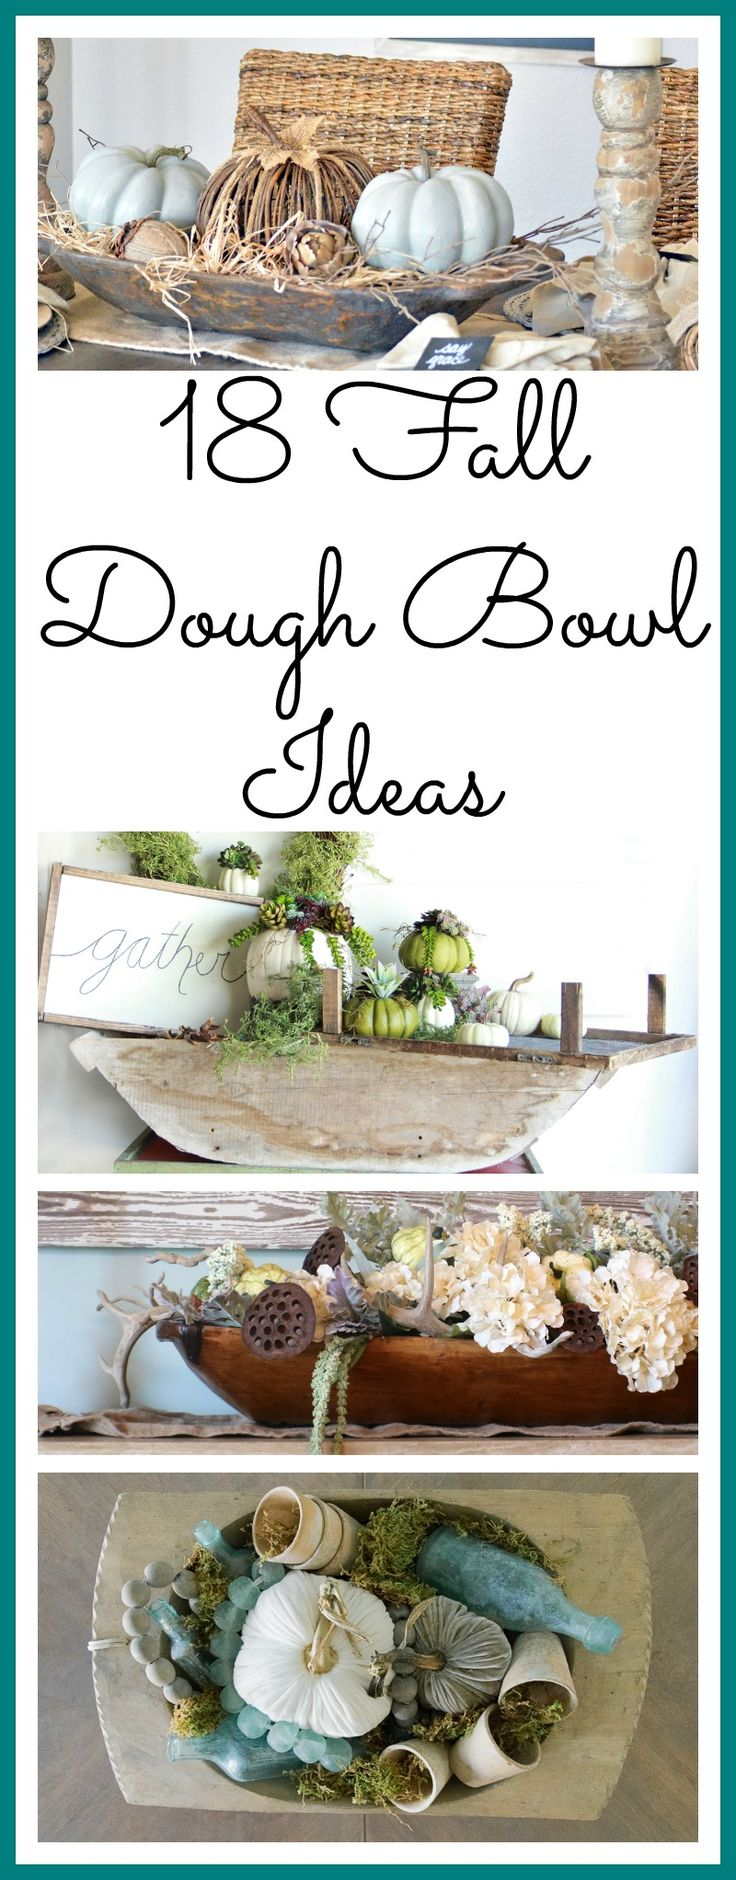 Need some dough bowl decorating inspiration? These 20 dough bowls have been beautifully styled for fall. All different and beautiful in their own way.